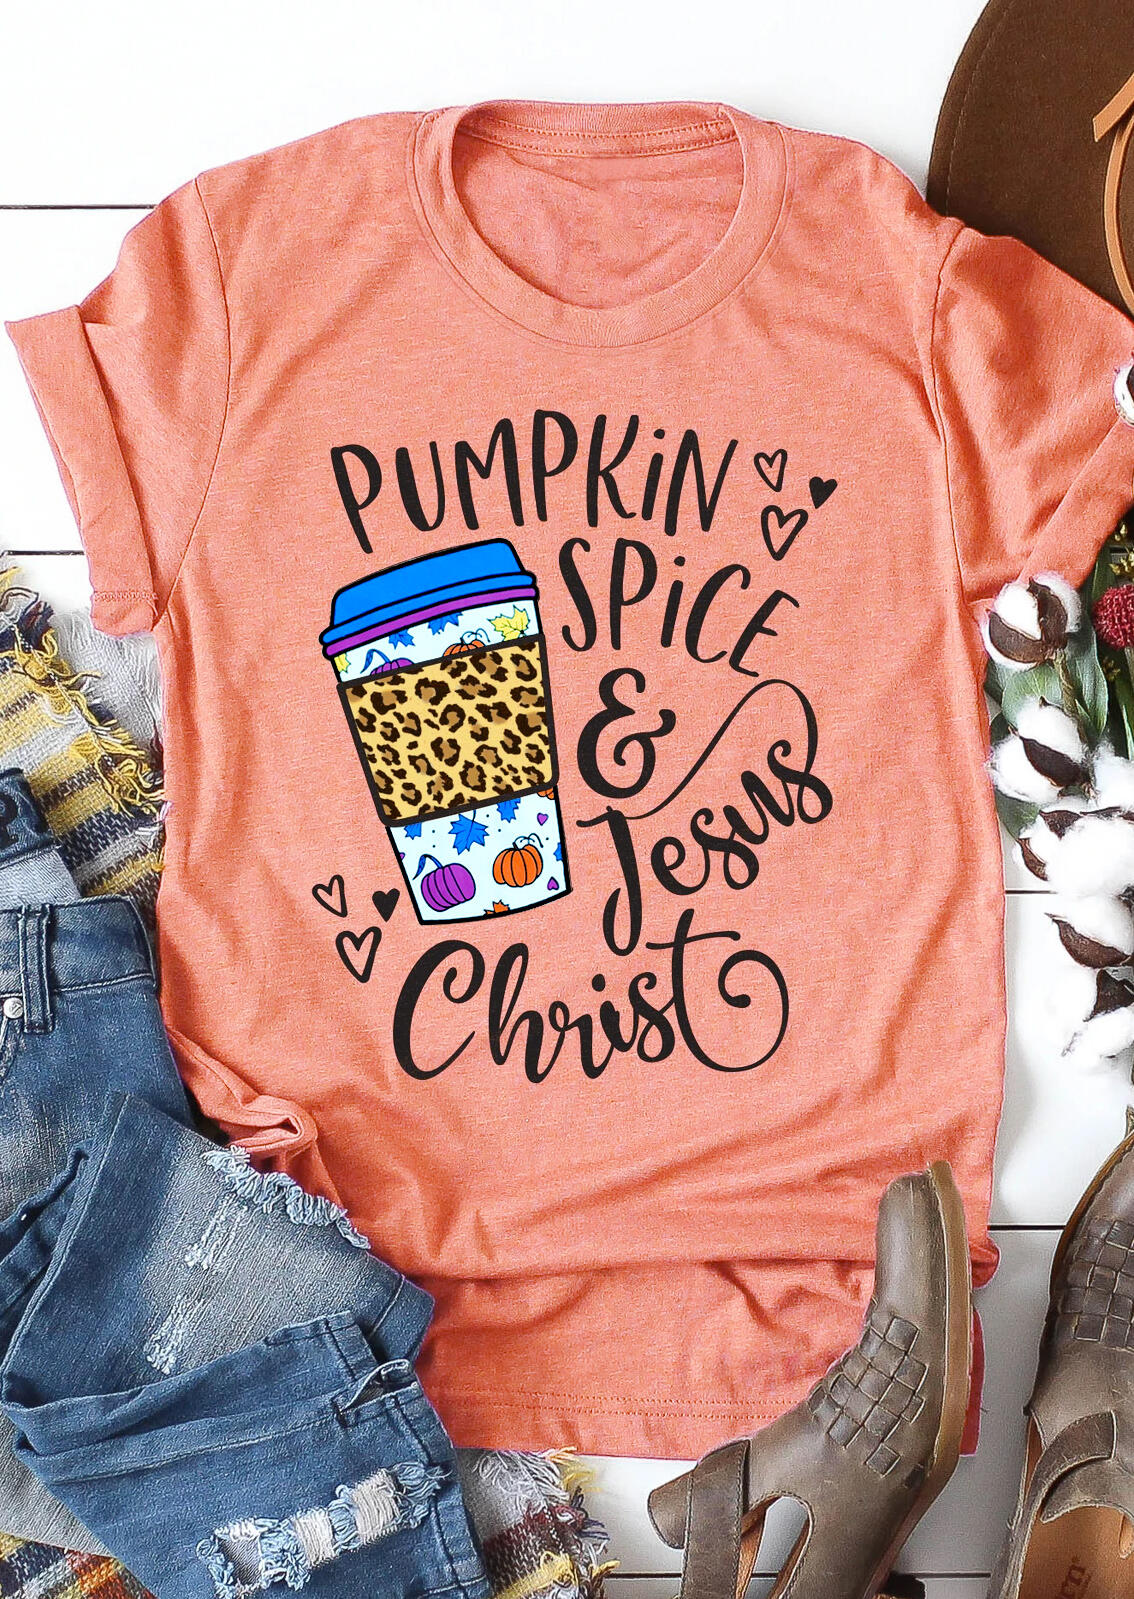 Pumpkin Spice & Jesus Christ Leopard Heart Drink T-Shirt Tee - Orange